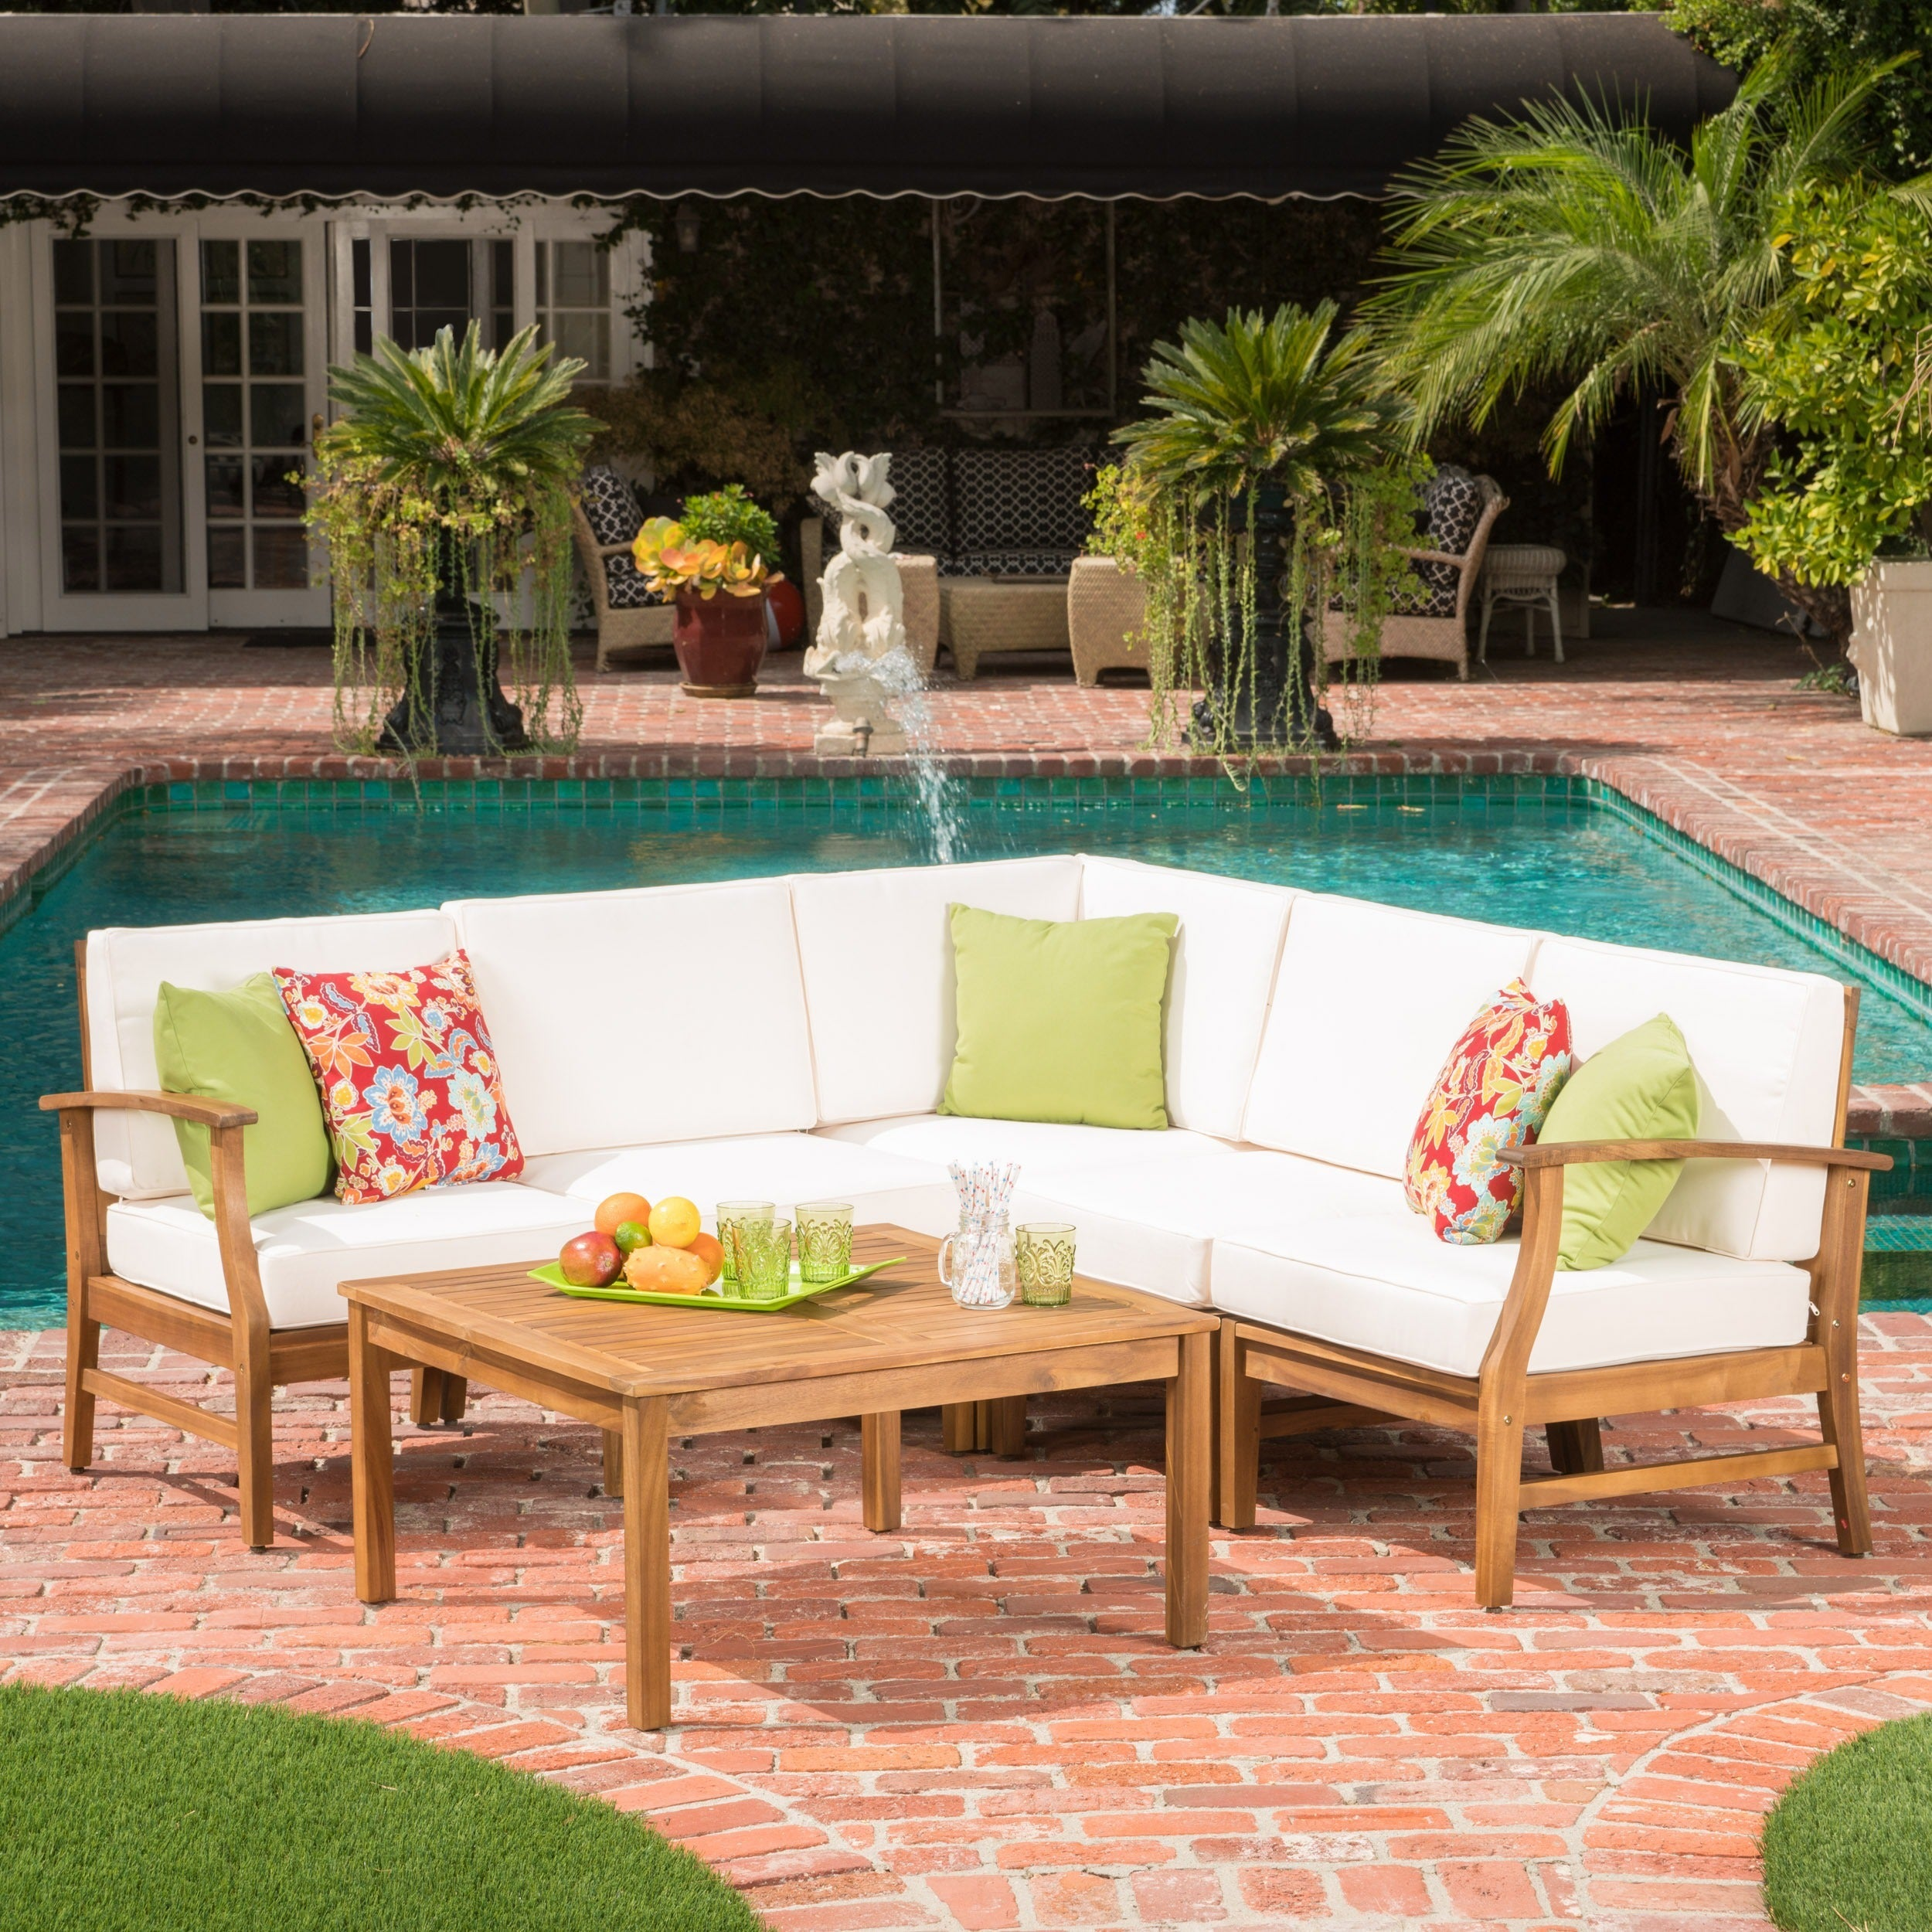 Perla 6-Piece Outdoor Wood Chat Set w/ Cushions by Christopher Knight Home  - Free Shipping Today - Overstock.com - 19889704